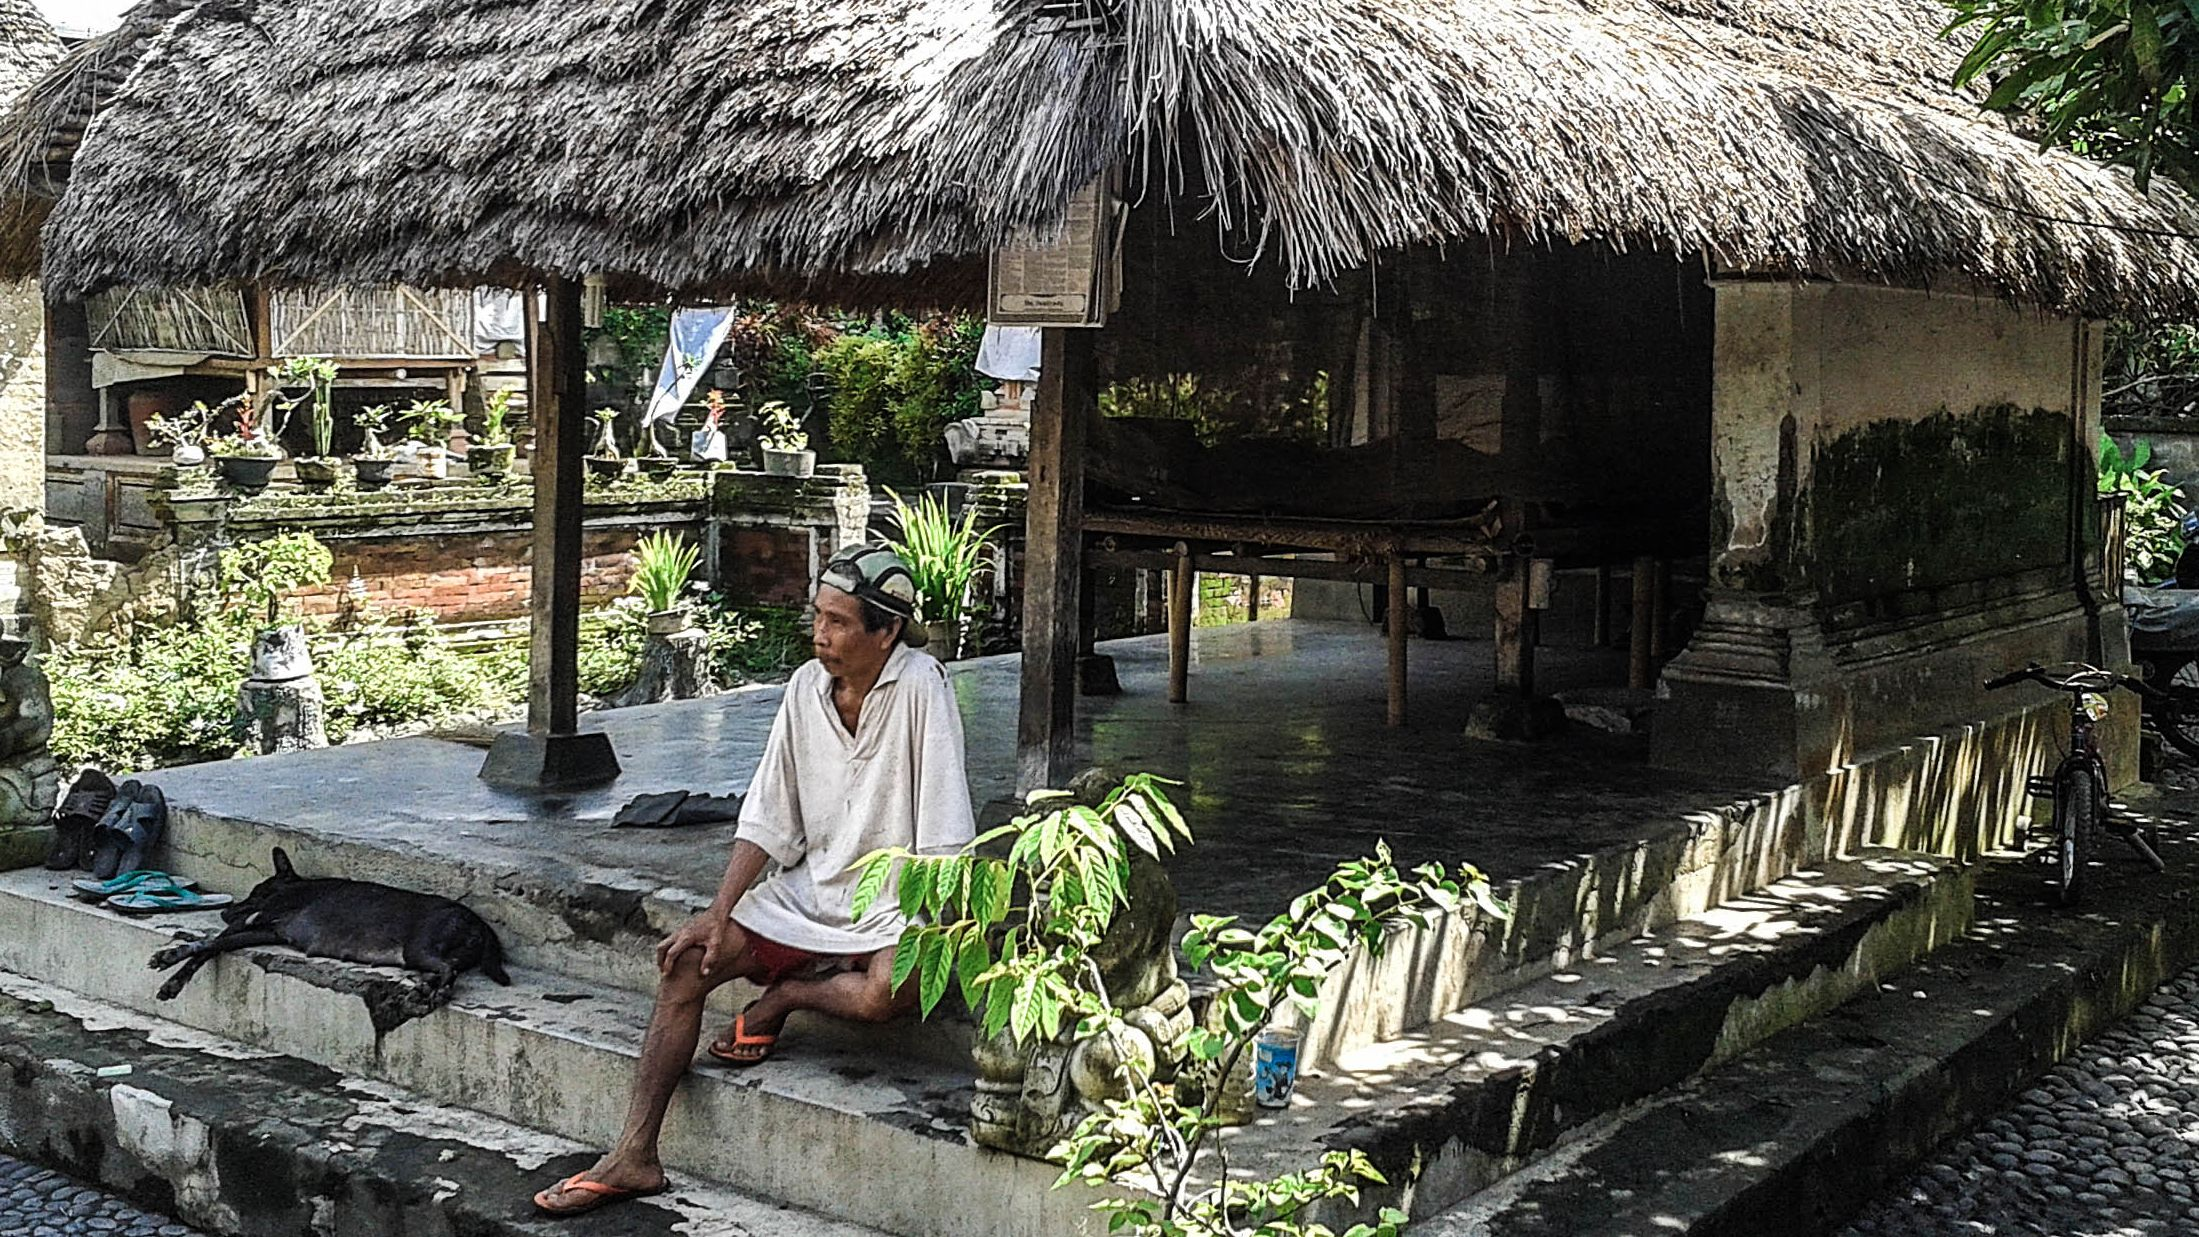 Bali traditional house with a man and dog out front